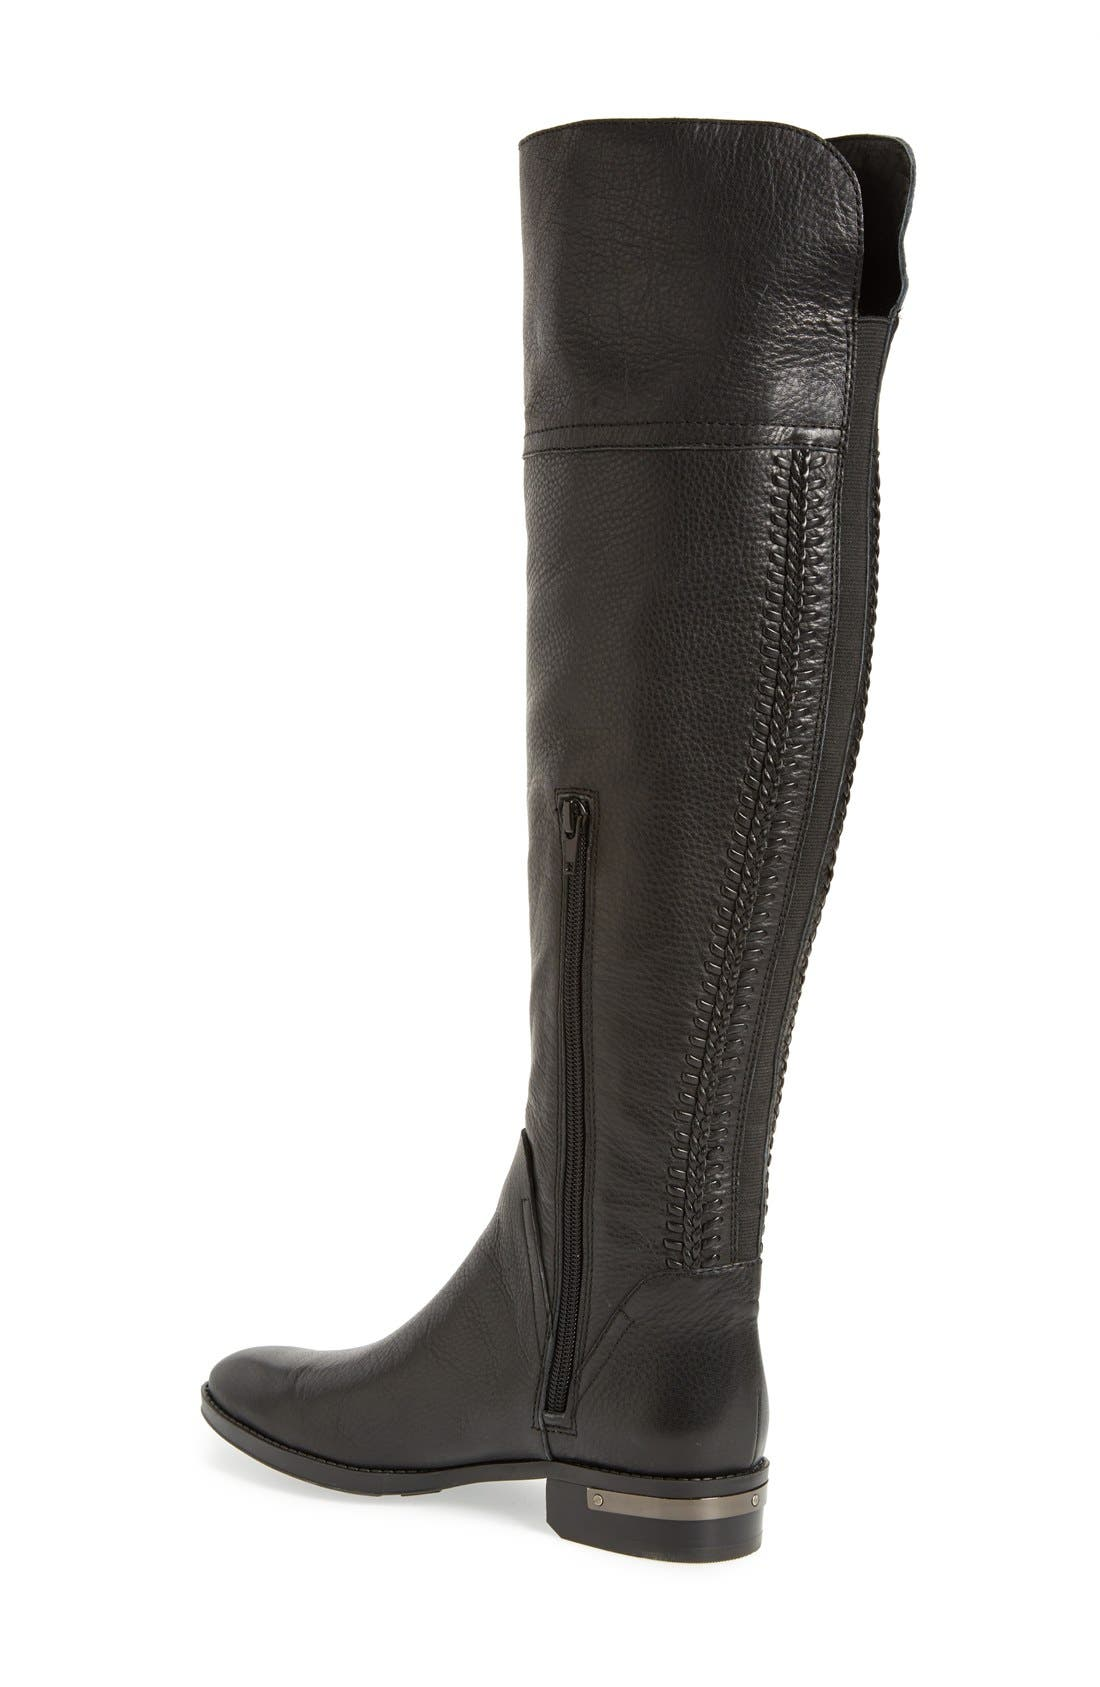 'Pedra' Over the Knee Boot,                             Alternate thumbnail 2, color,                             001